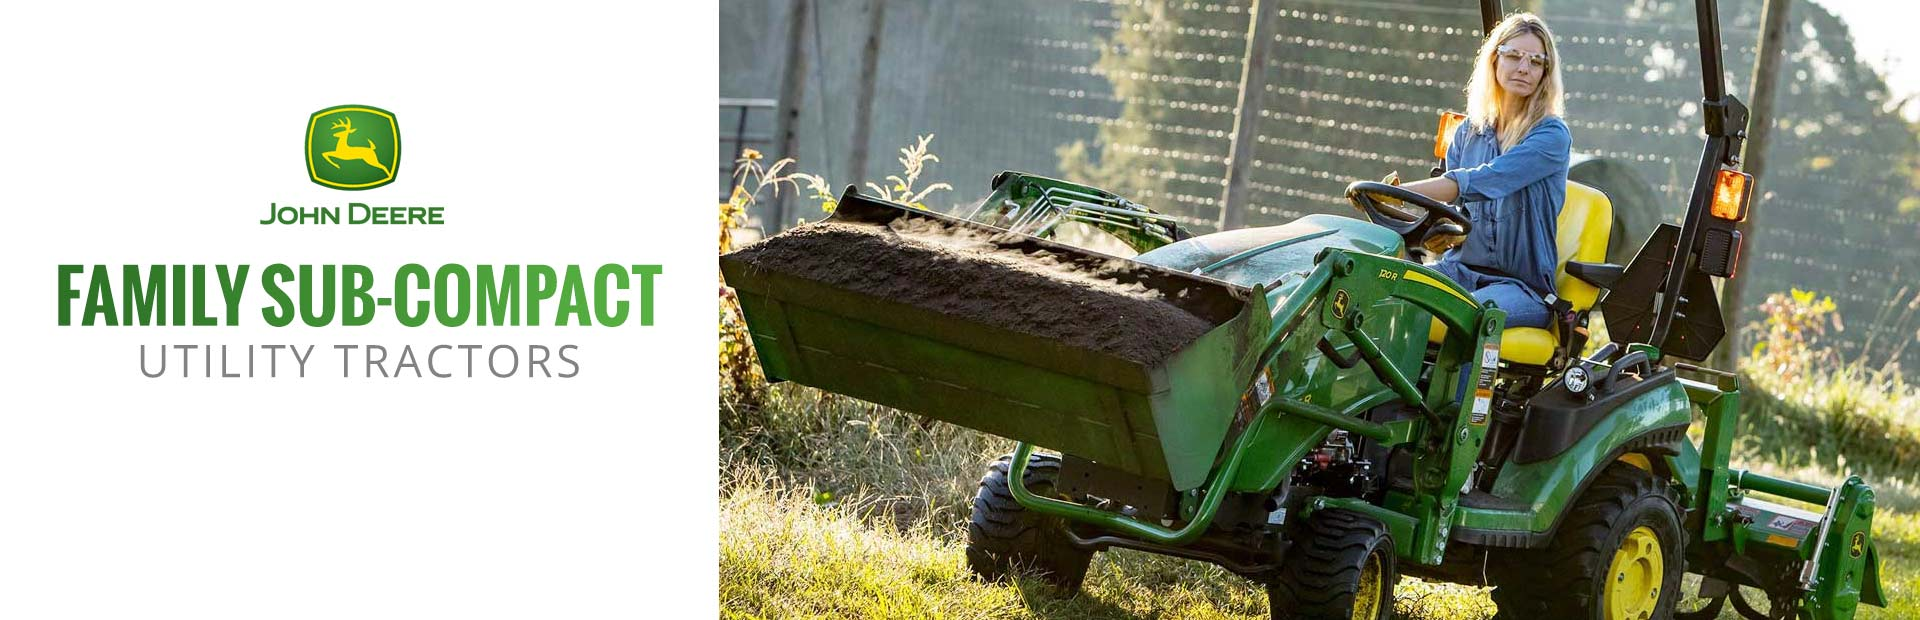 John Deere: Family Sub-Compact Utility Tractors